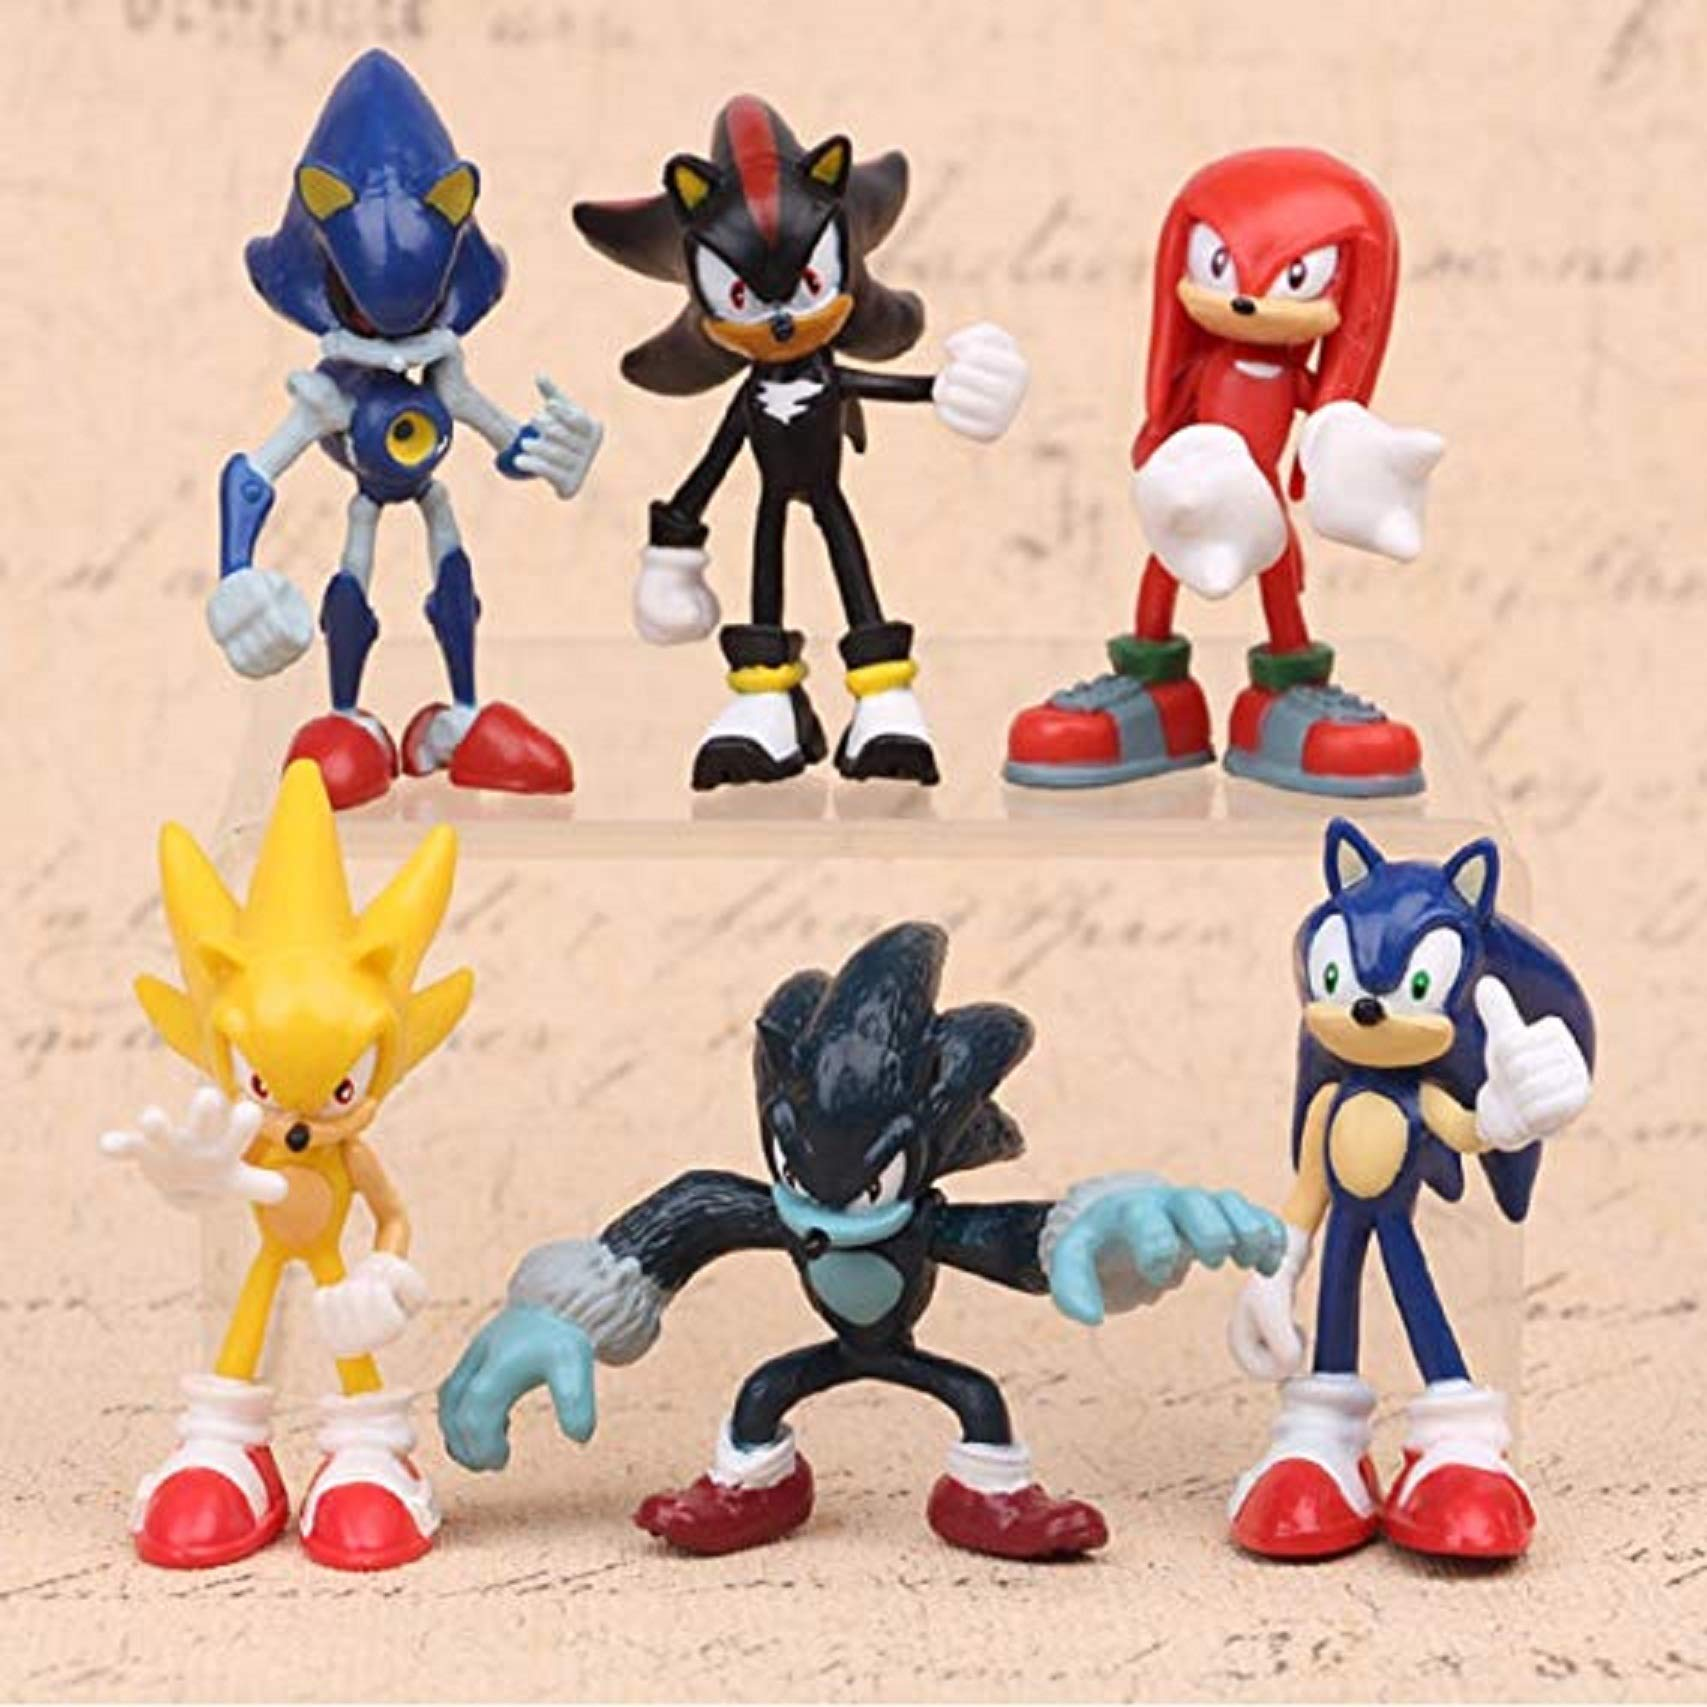 Sonic the Hedgehog Kids Toy 6pcs Action Figure Set Gift Doll Toy Christmas Game by Unknown